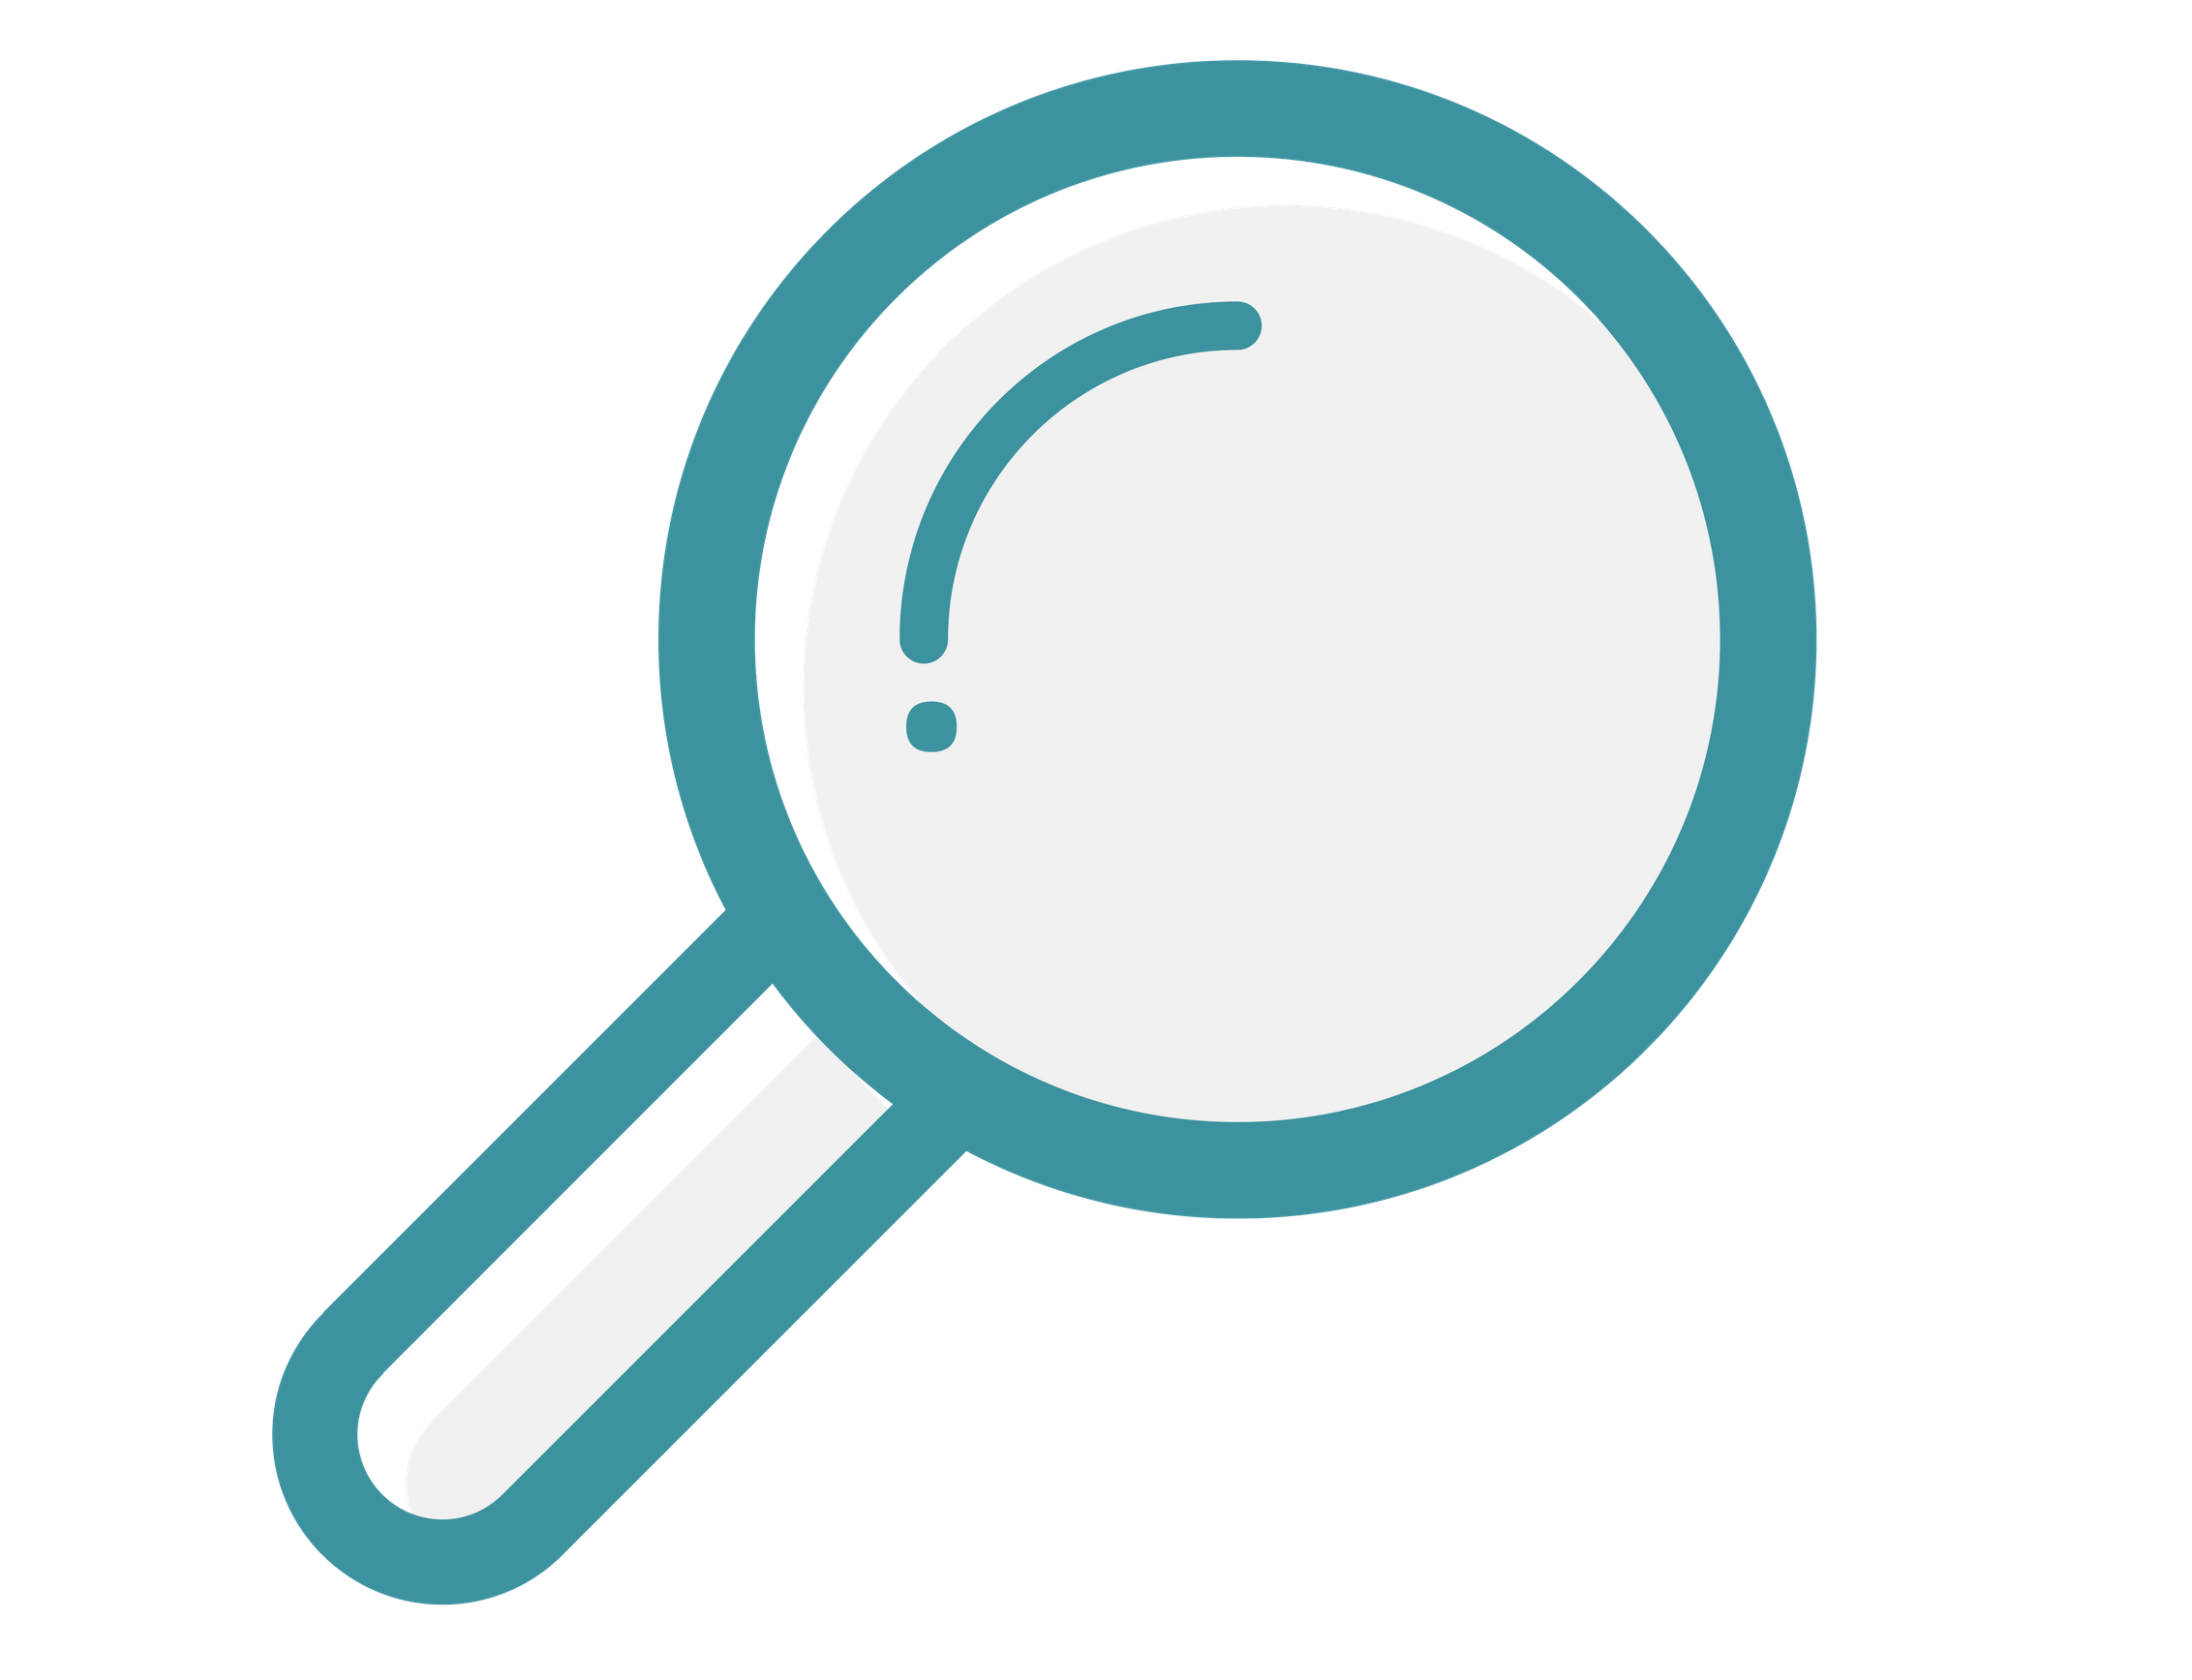 Search through the ever-growing database for the project or job of your dreams. Get the descriptions and requirements, and all other important details. -